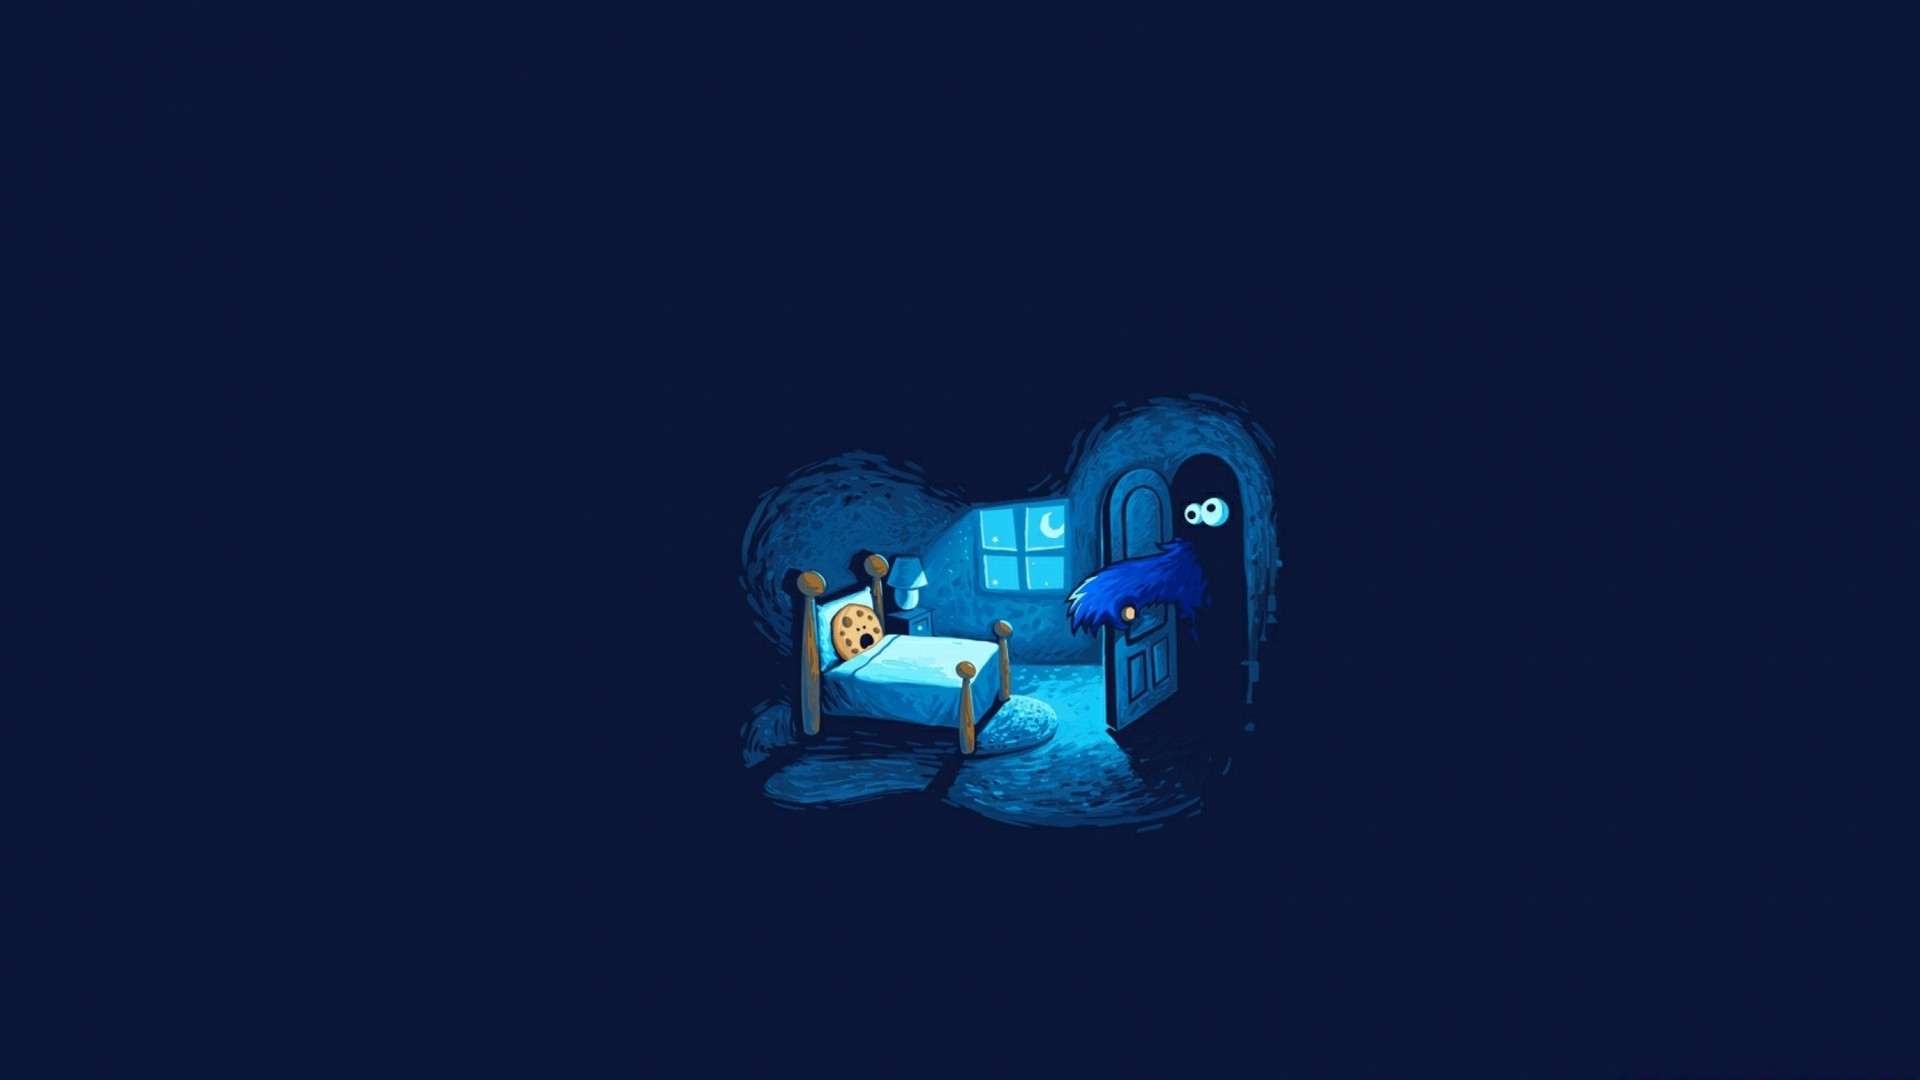 Windows 10 Funny Wallpaper 70 images 1920x1080